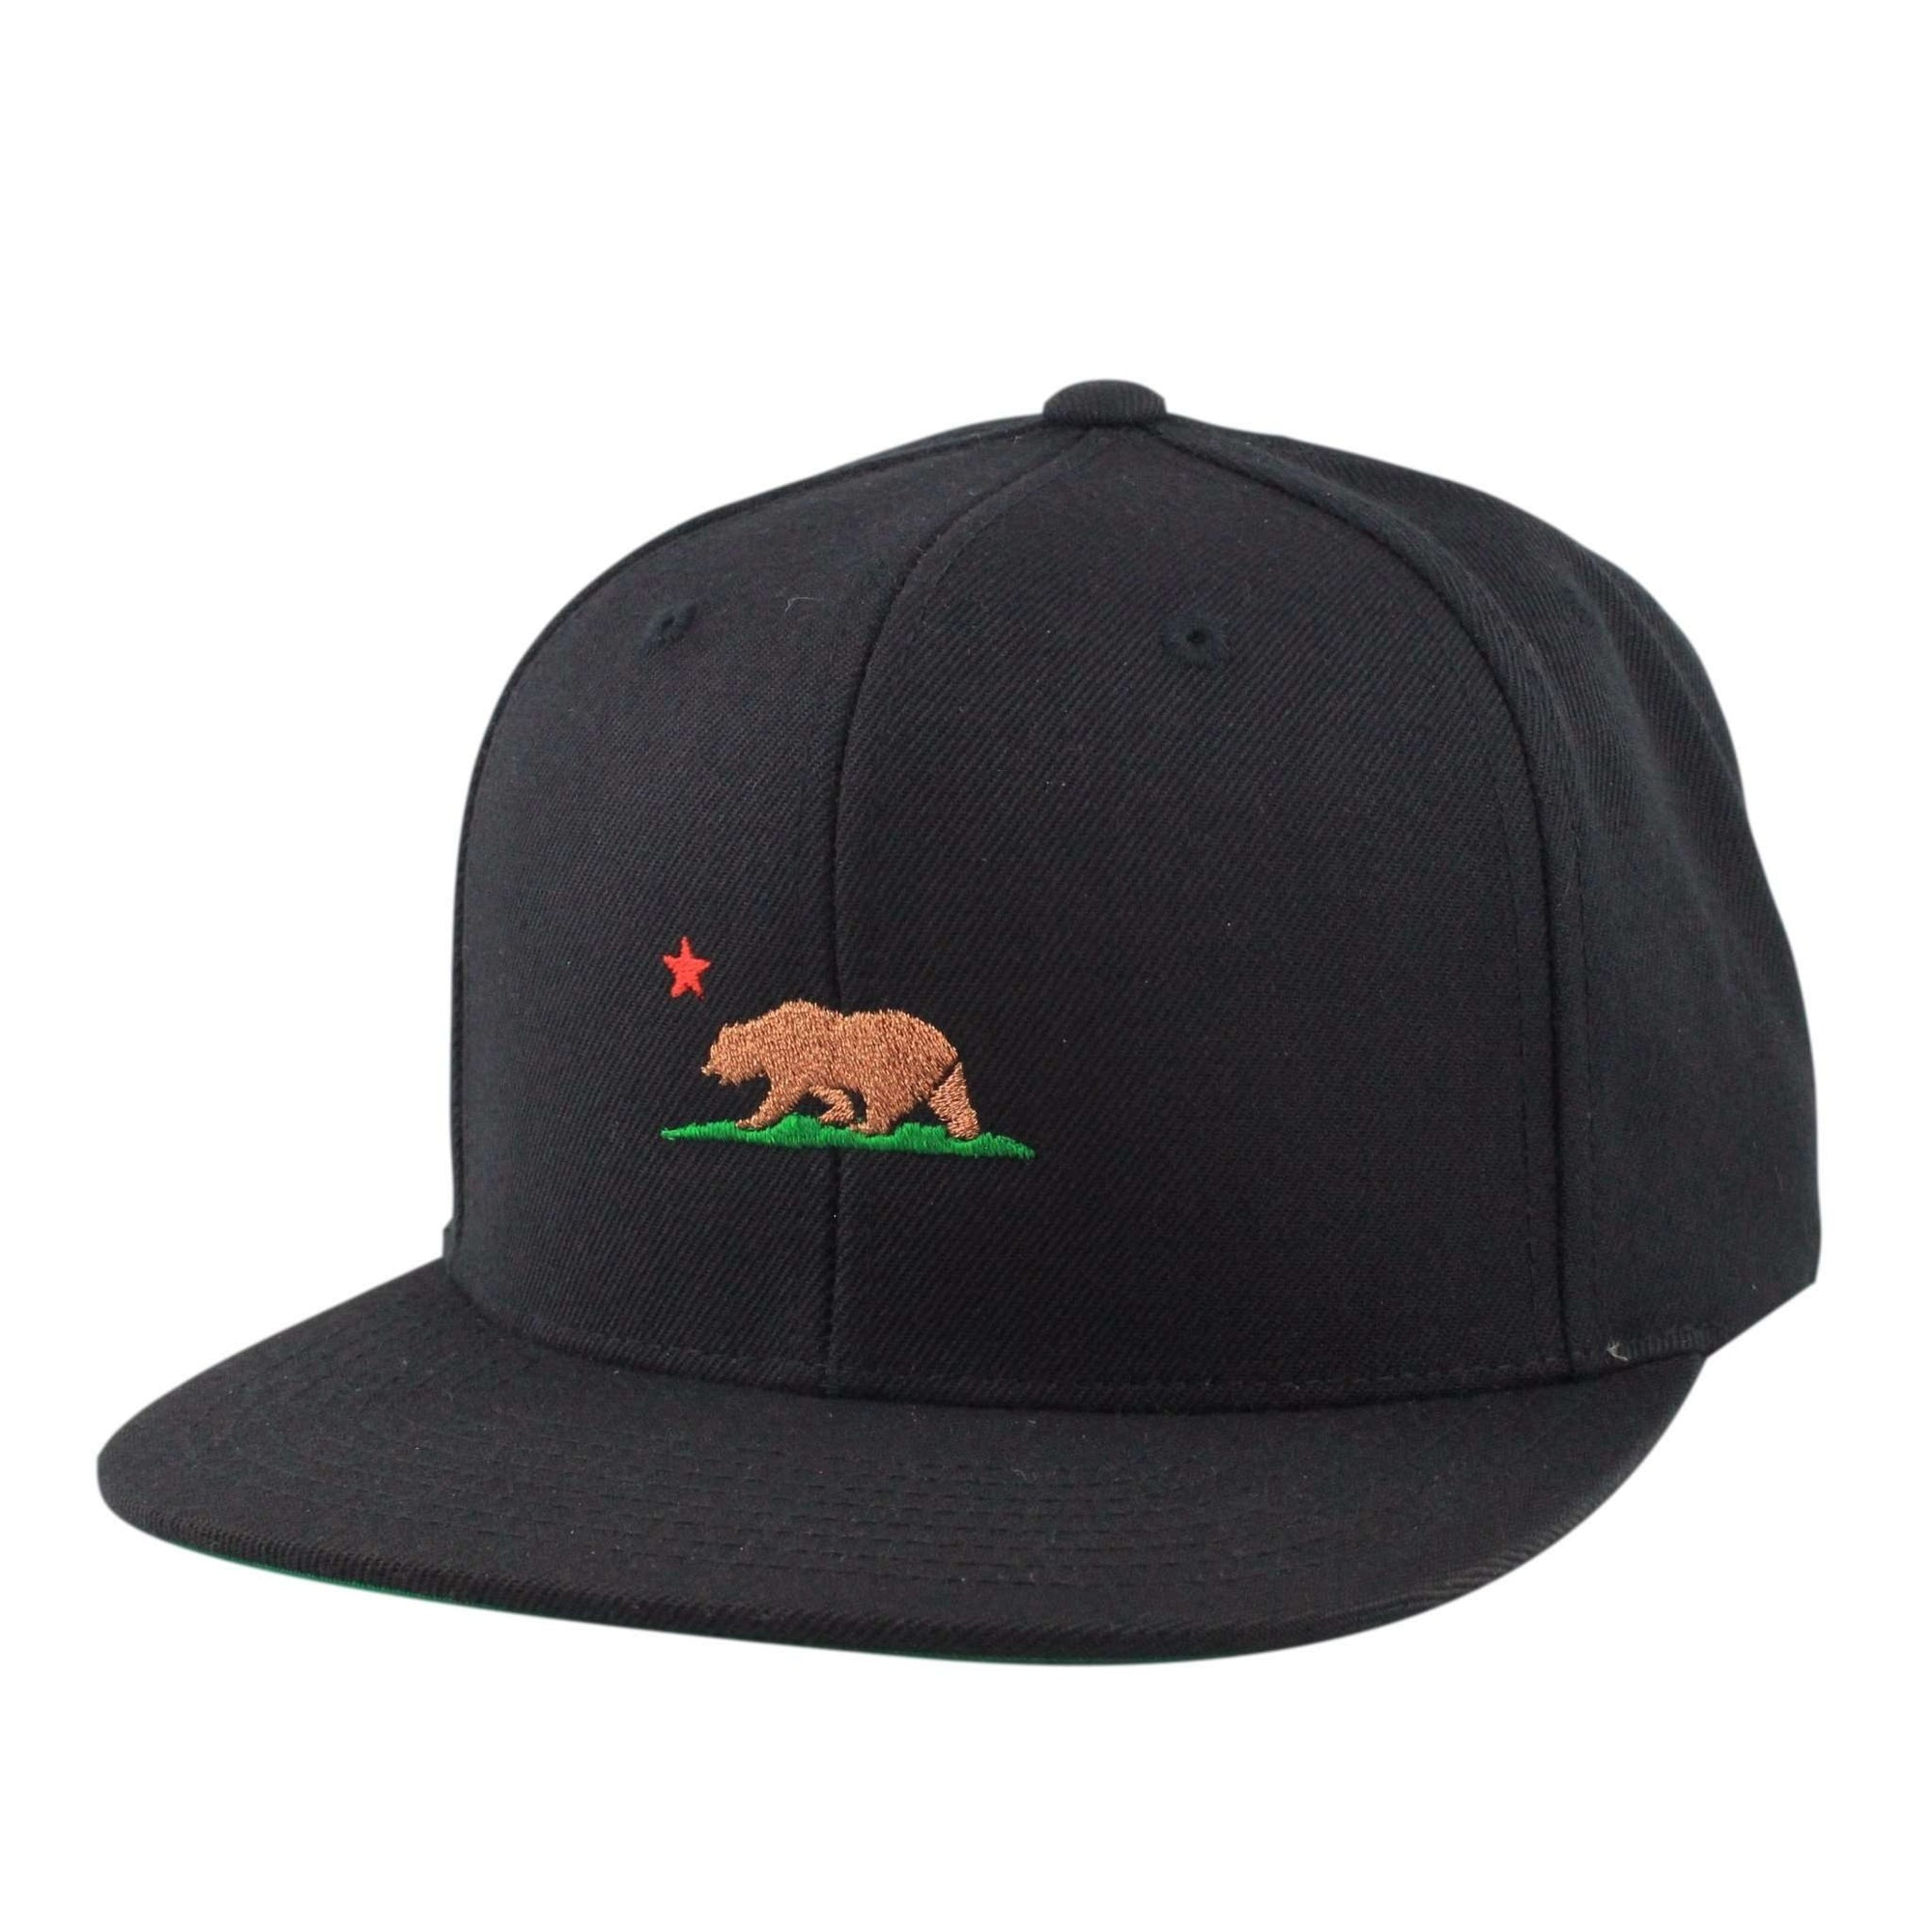 2f863f0e ... buy 1850 1850 california bear black black snapback 05b2f 4b75d